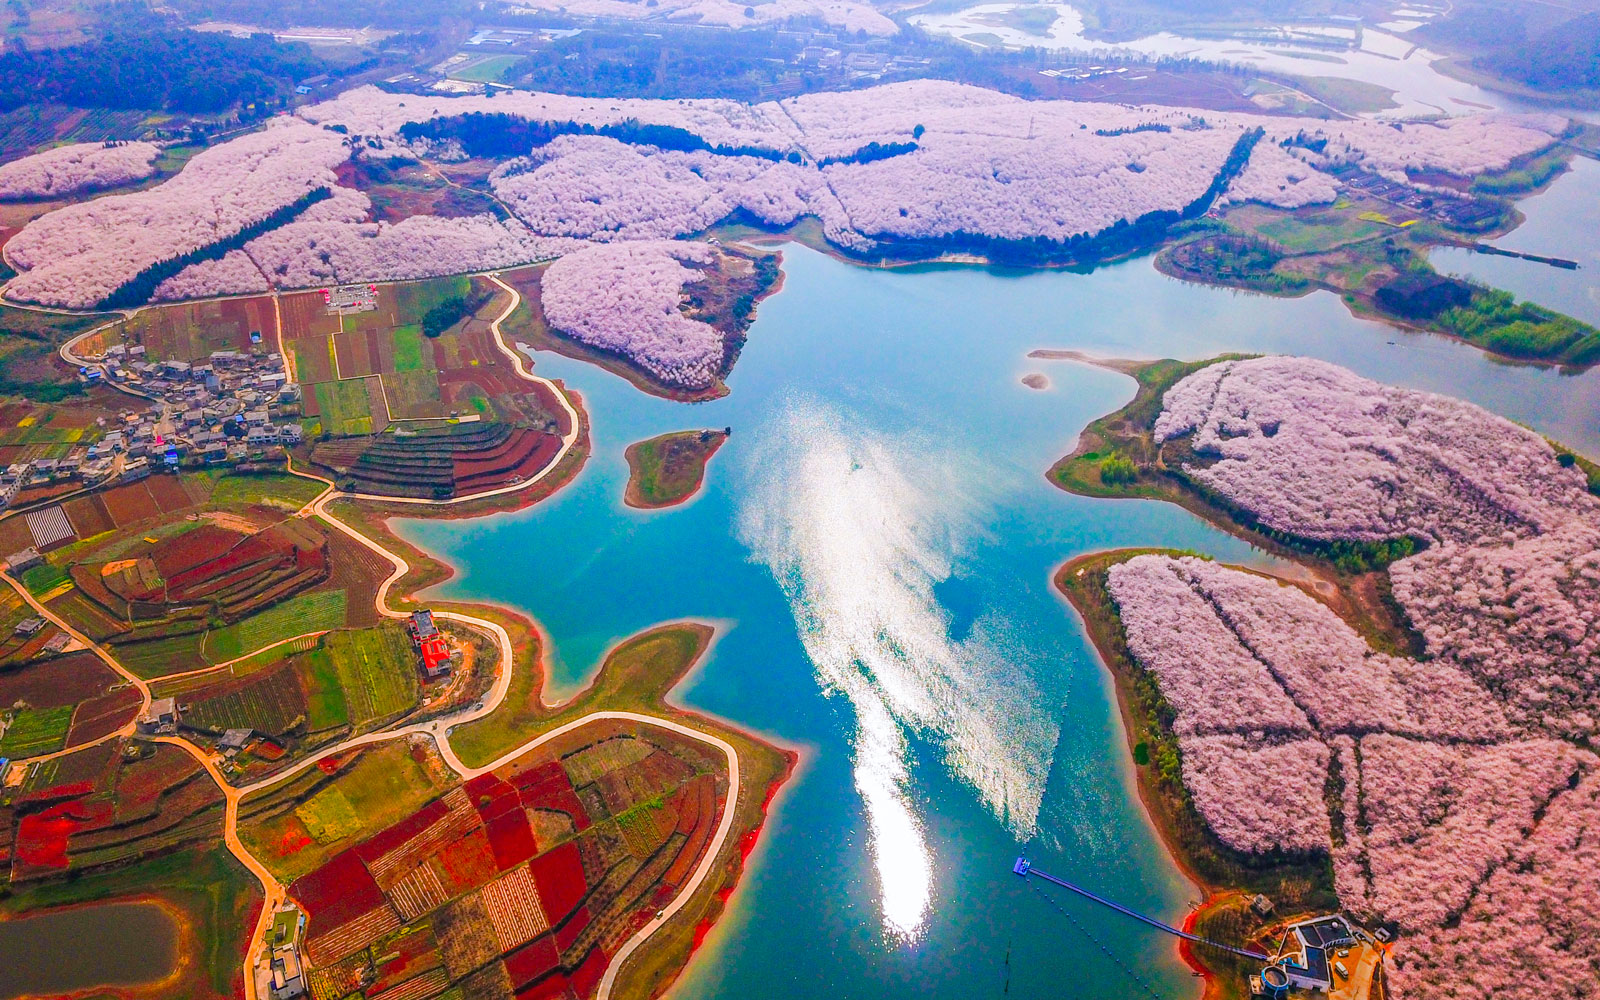 China's Spring Flowers Look Magical in These Photos